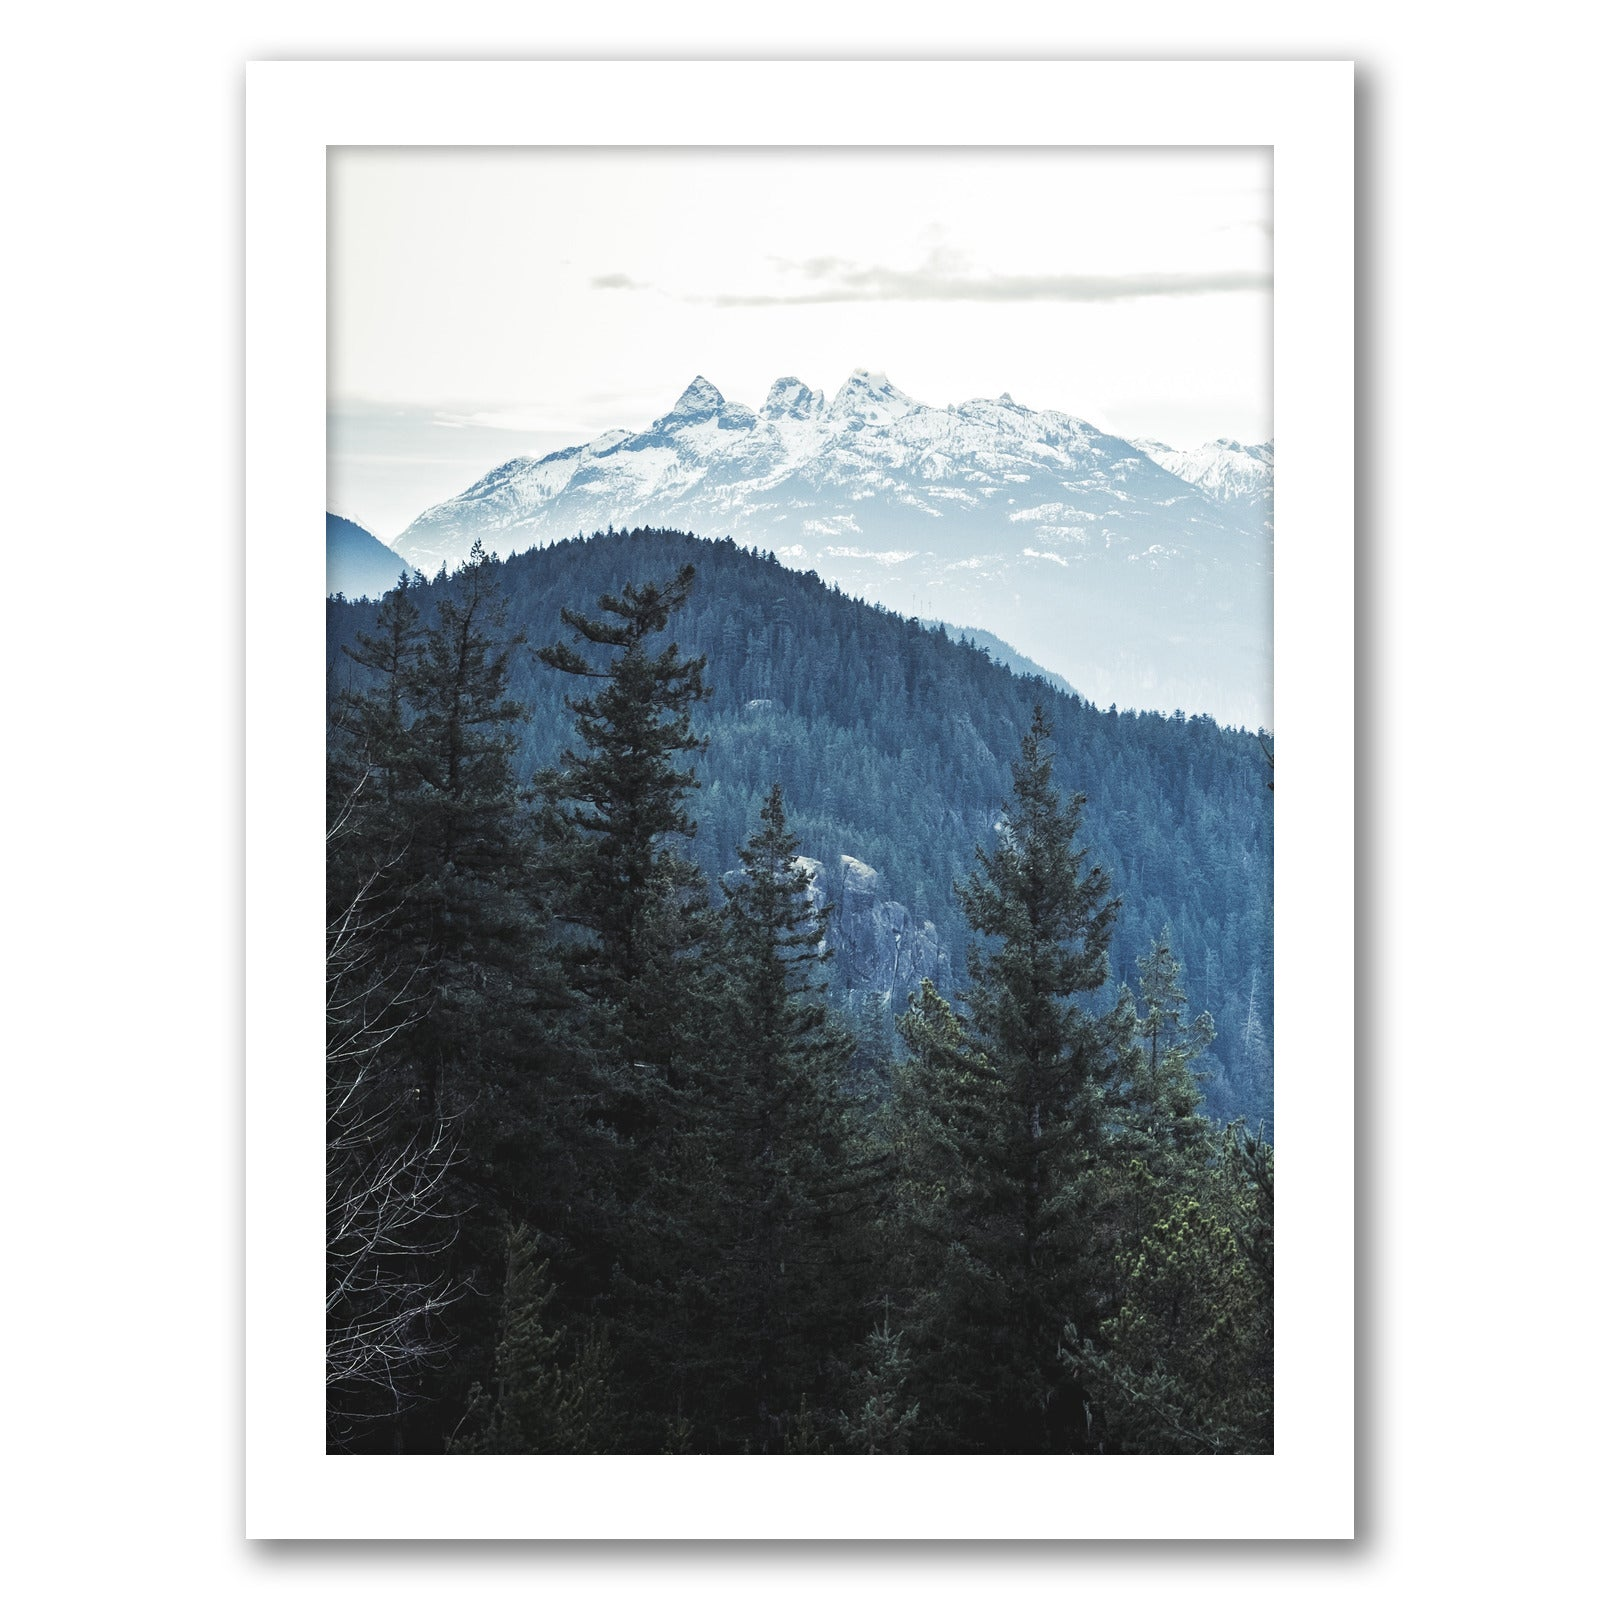 Nordic Landscape by Tanya Shumkina - White Framed Print - Wall Art - Americanflat